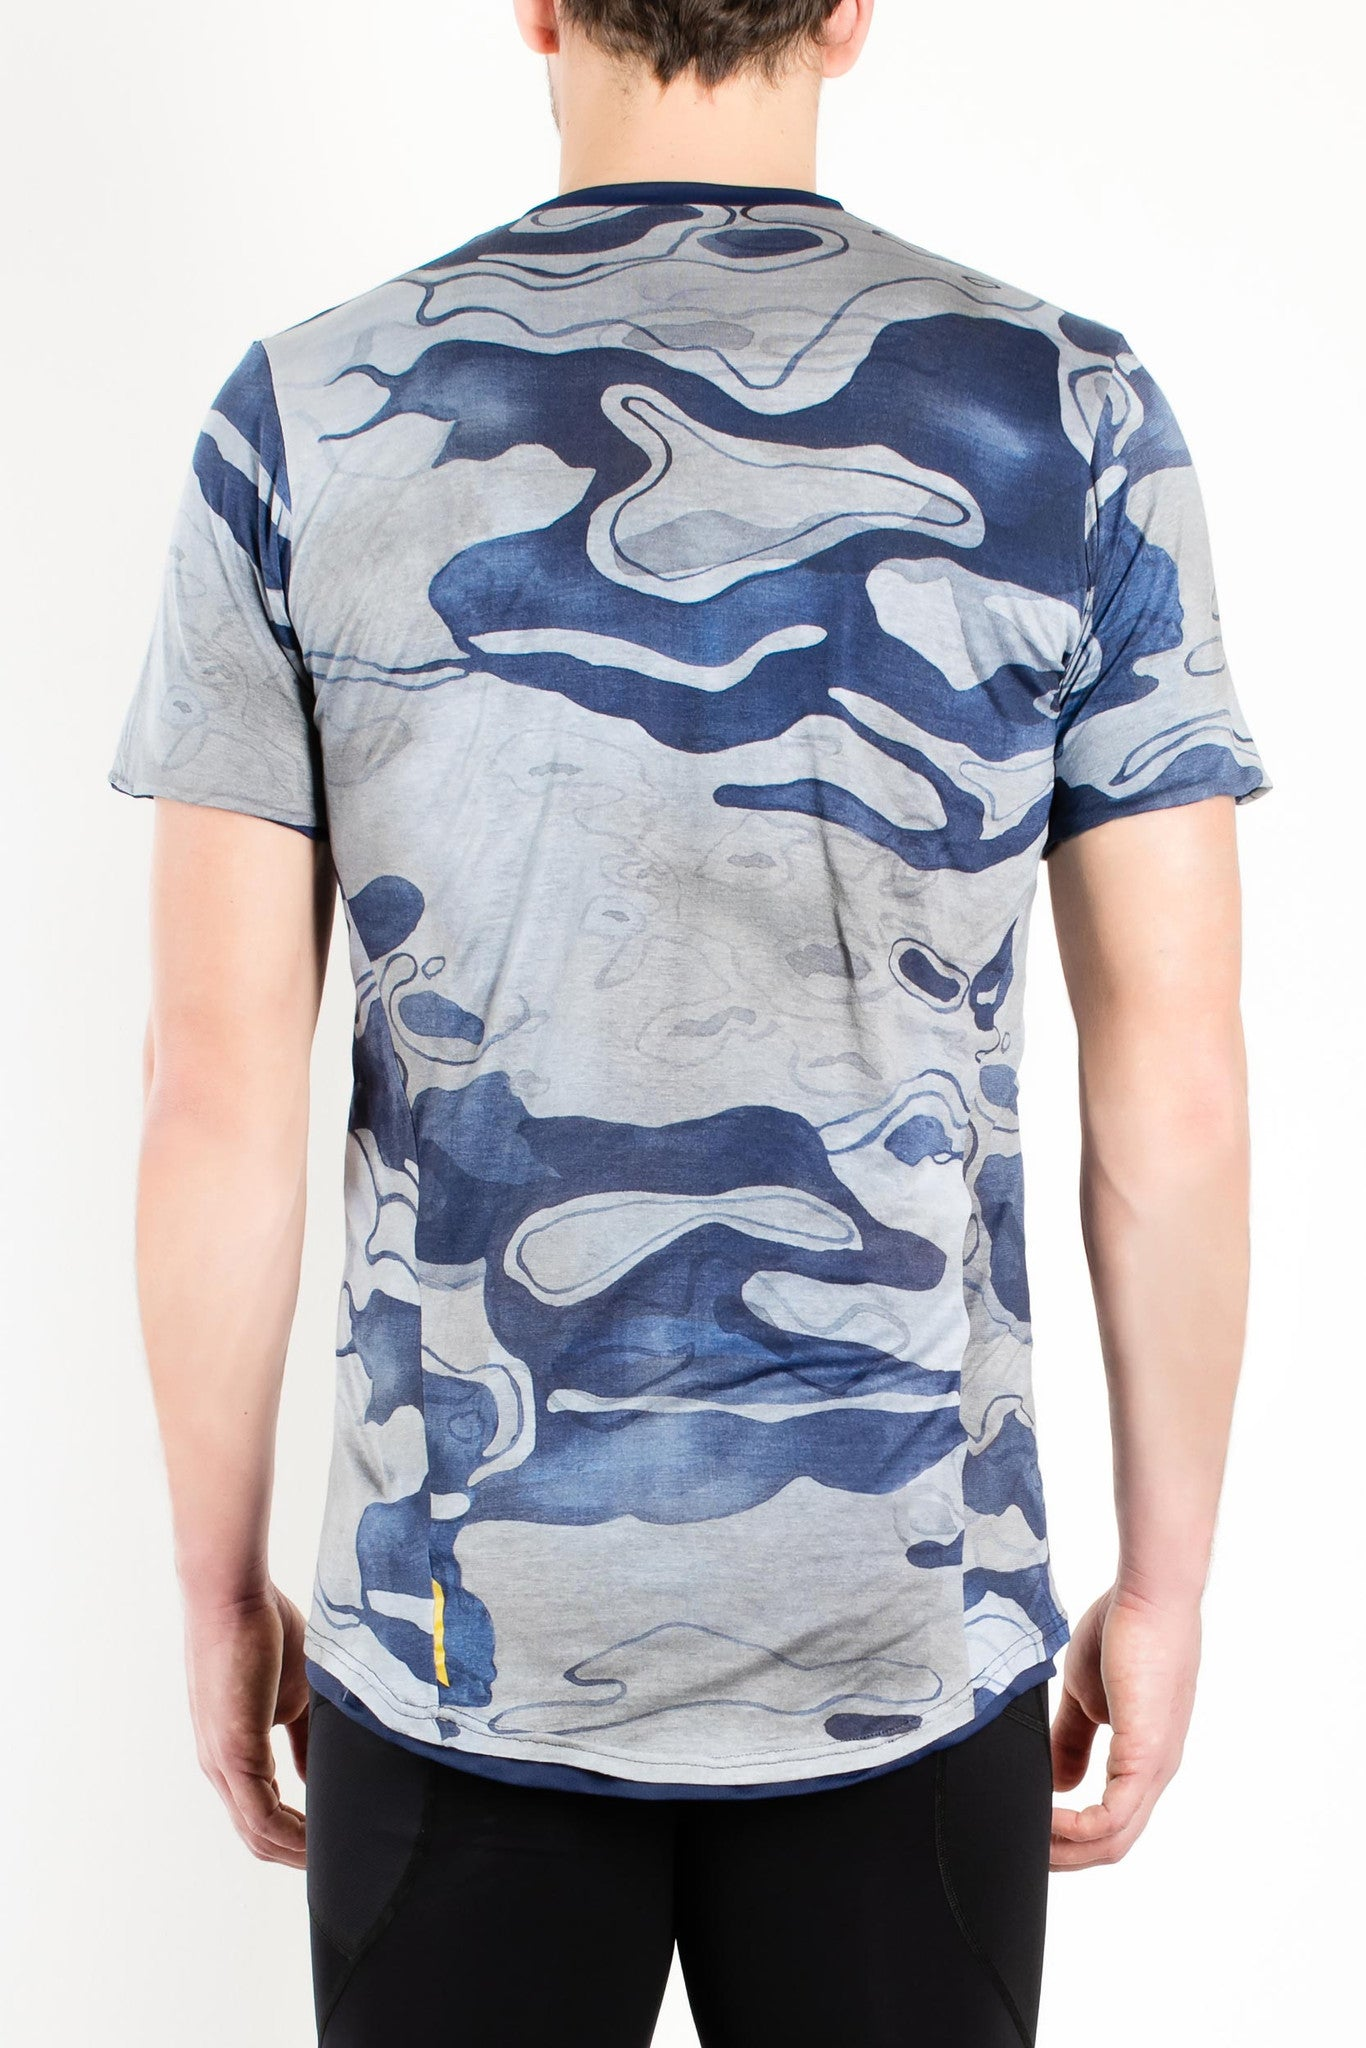 Conquista Crew-Neck Short Sleeve T-shirt / Blue Camo